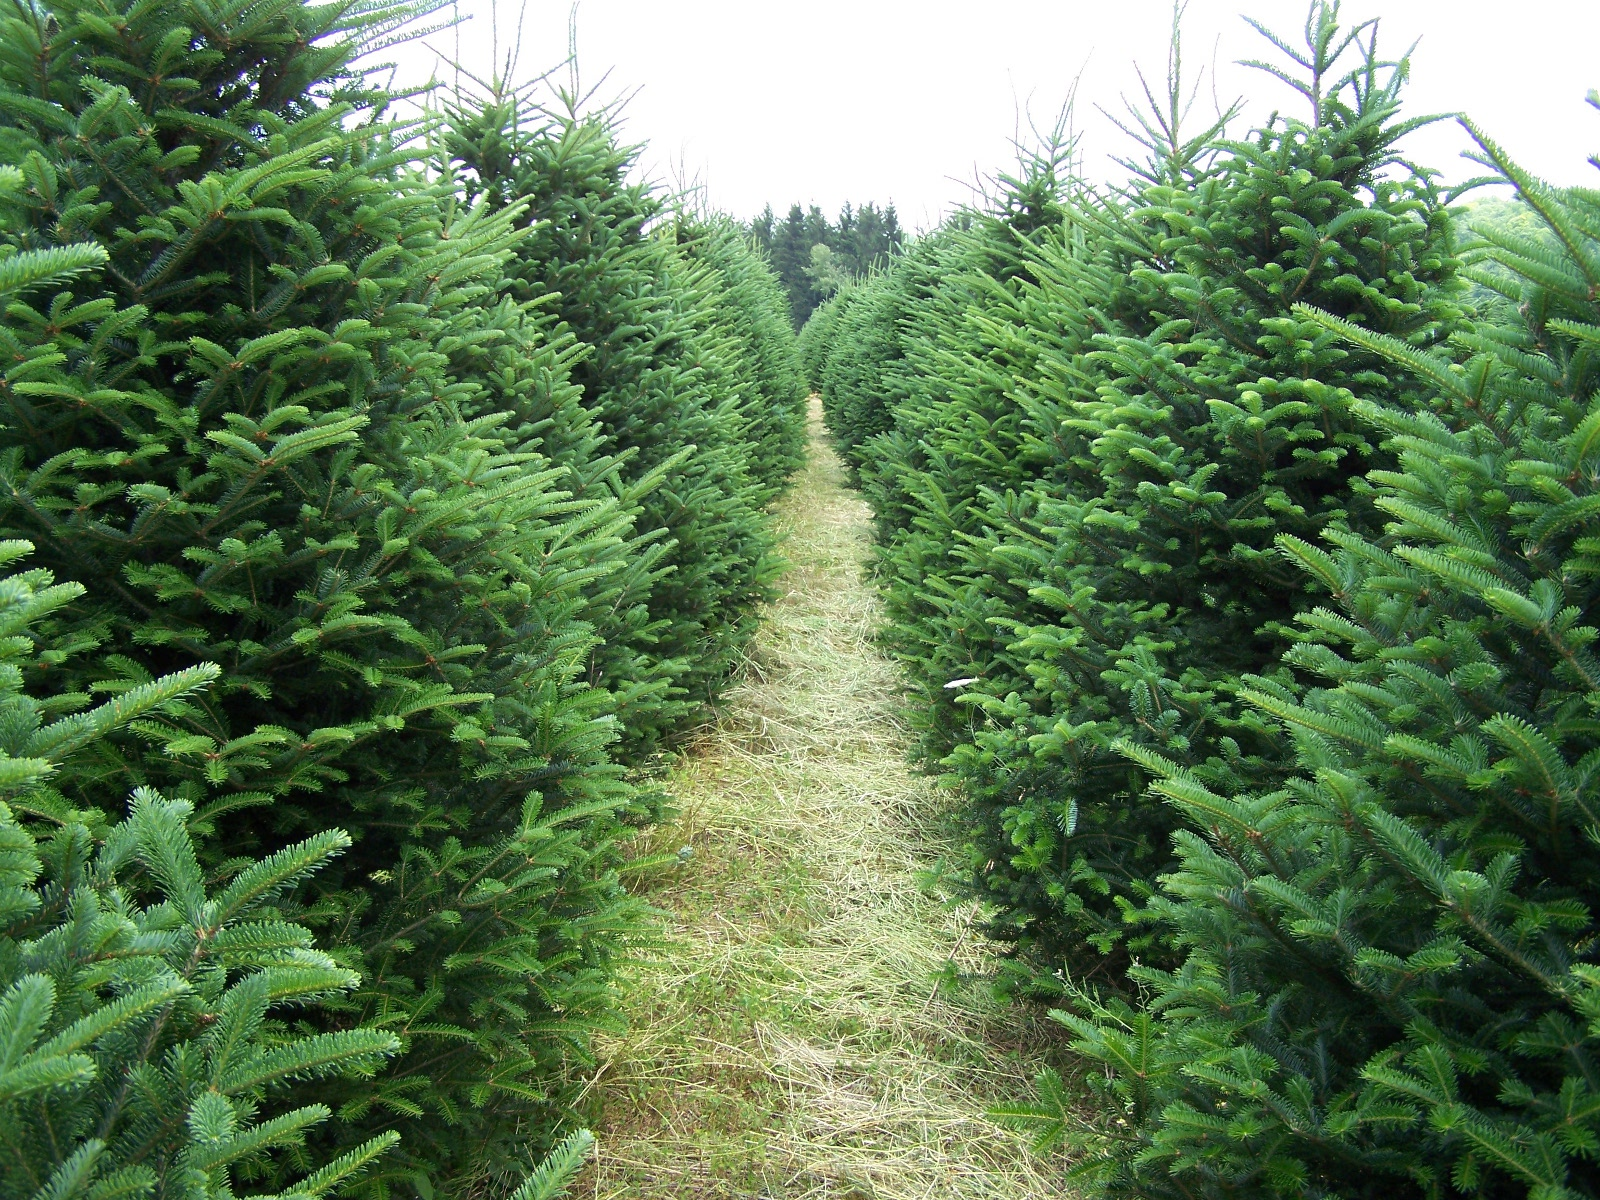 Fresh christmas trees up to 7 only thanksgiving weekend only friday 11 28 thru sunday - Tell tree dying order save ...